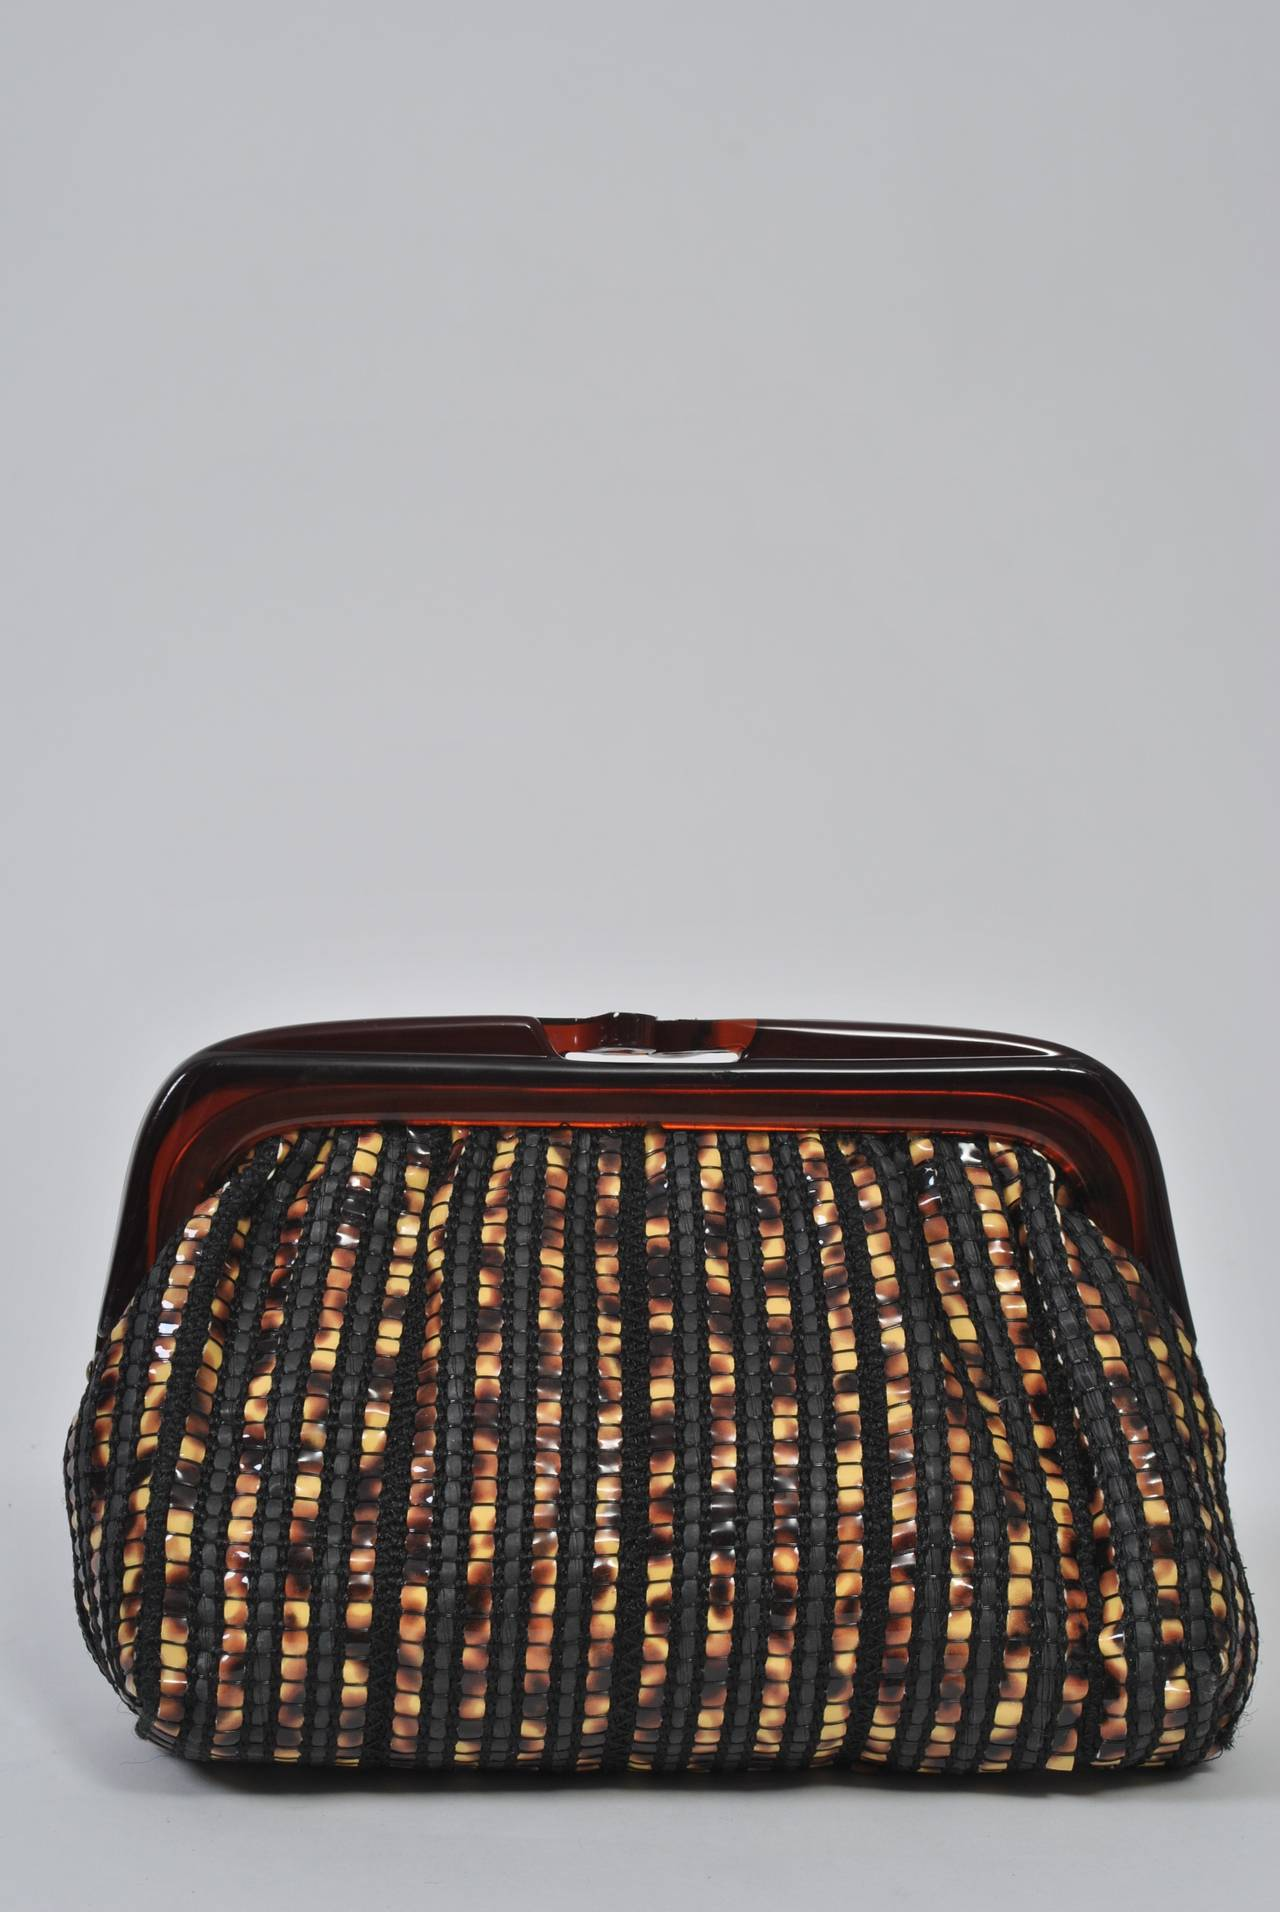 1970s Tortoise Look Clutch, Italy In Excellent Condition For Sale In Alford, MA